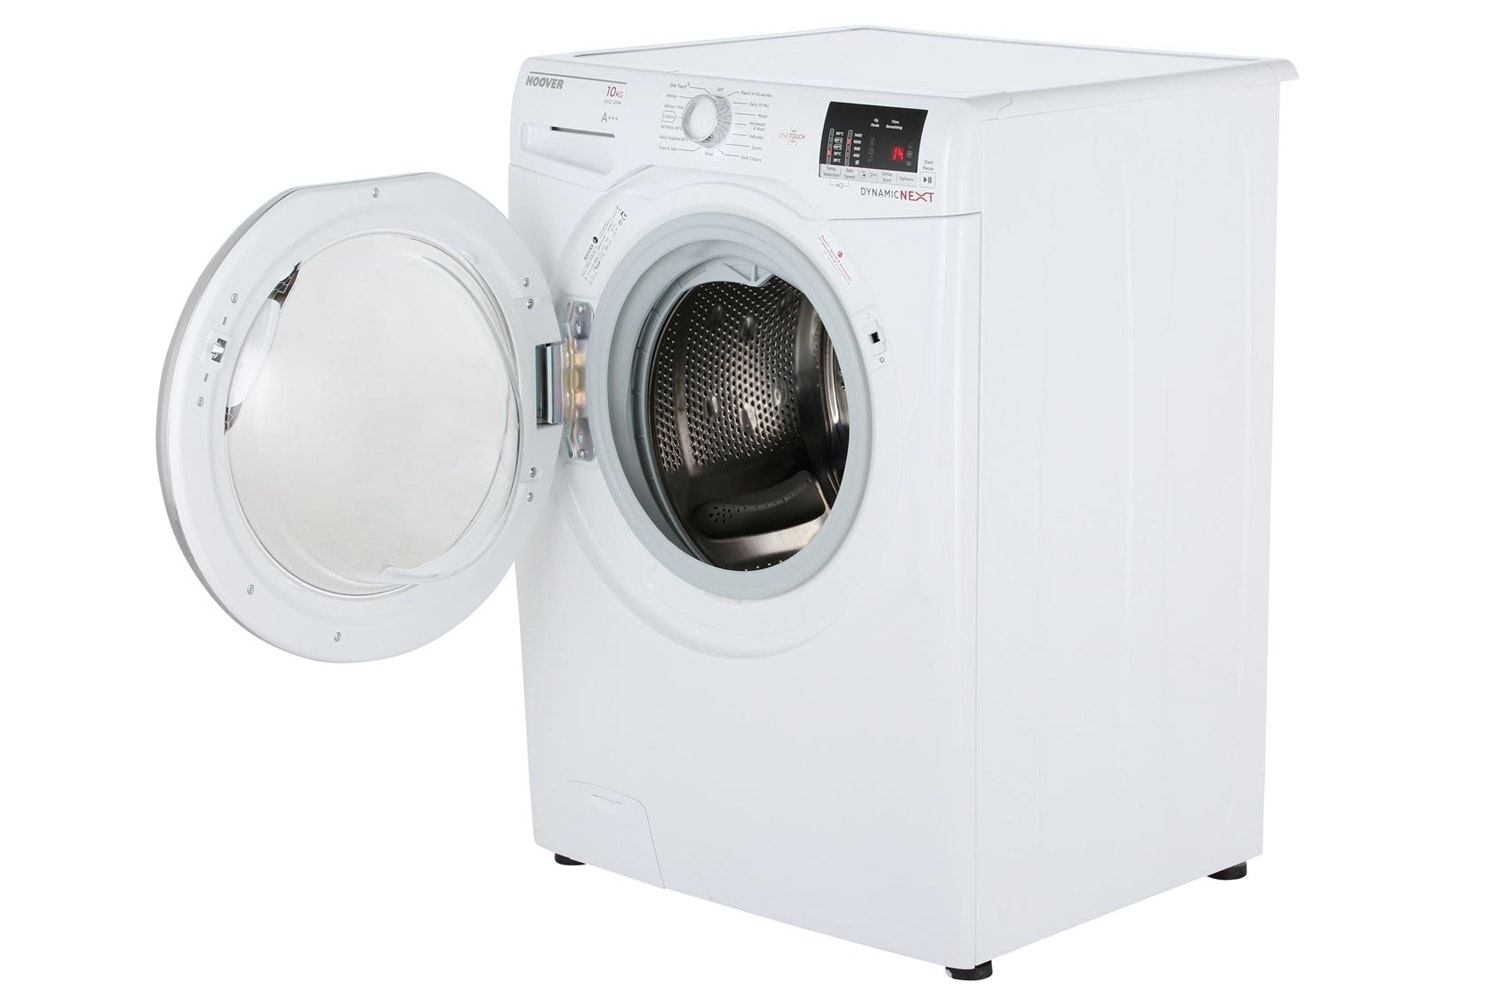 Hoover 10kg Washing Machine | DXOC 410C3/1-80